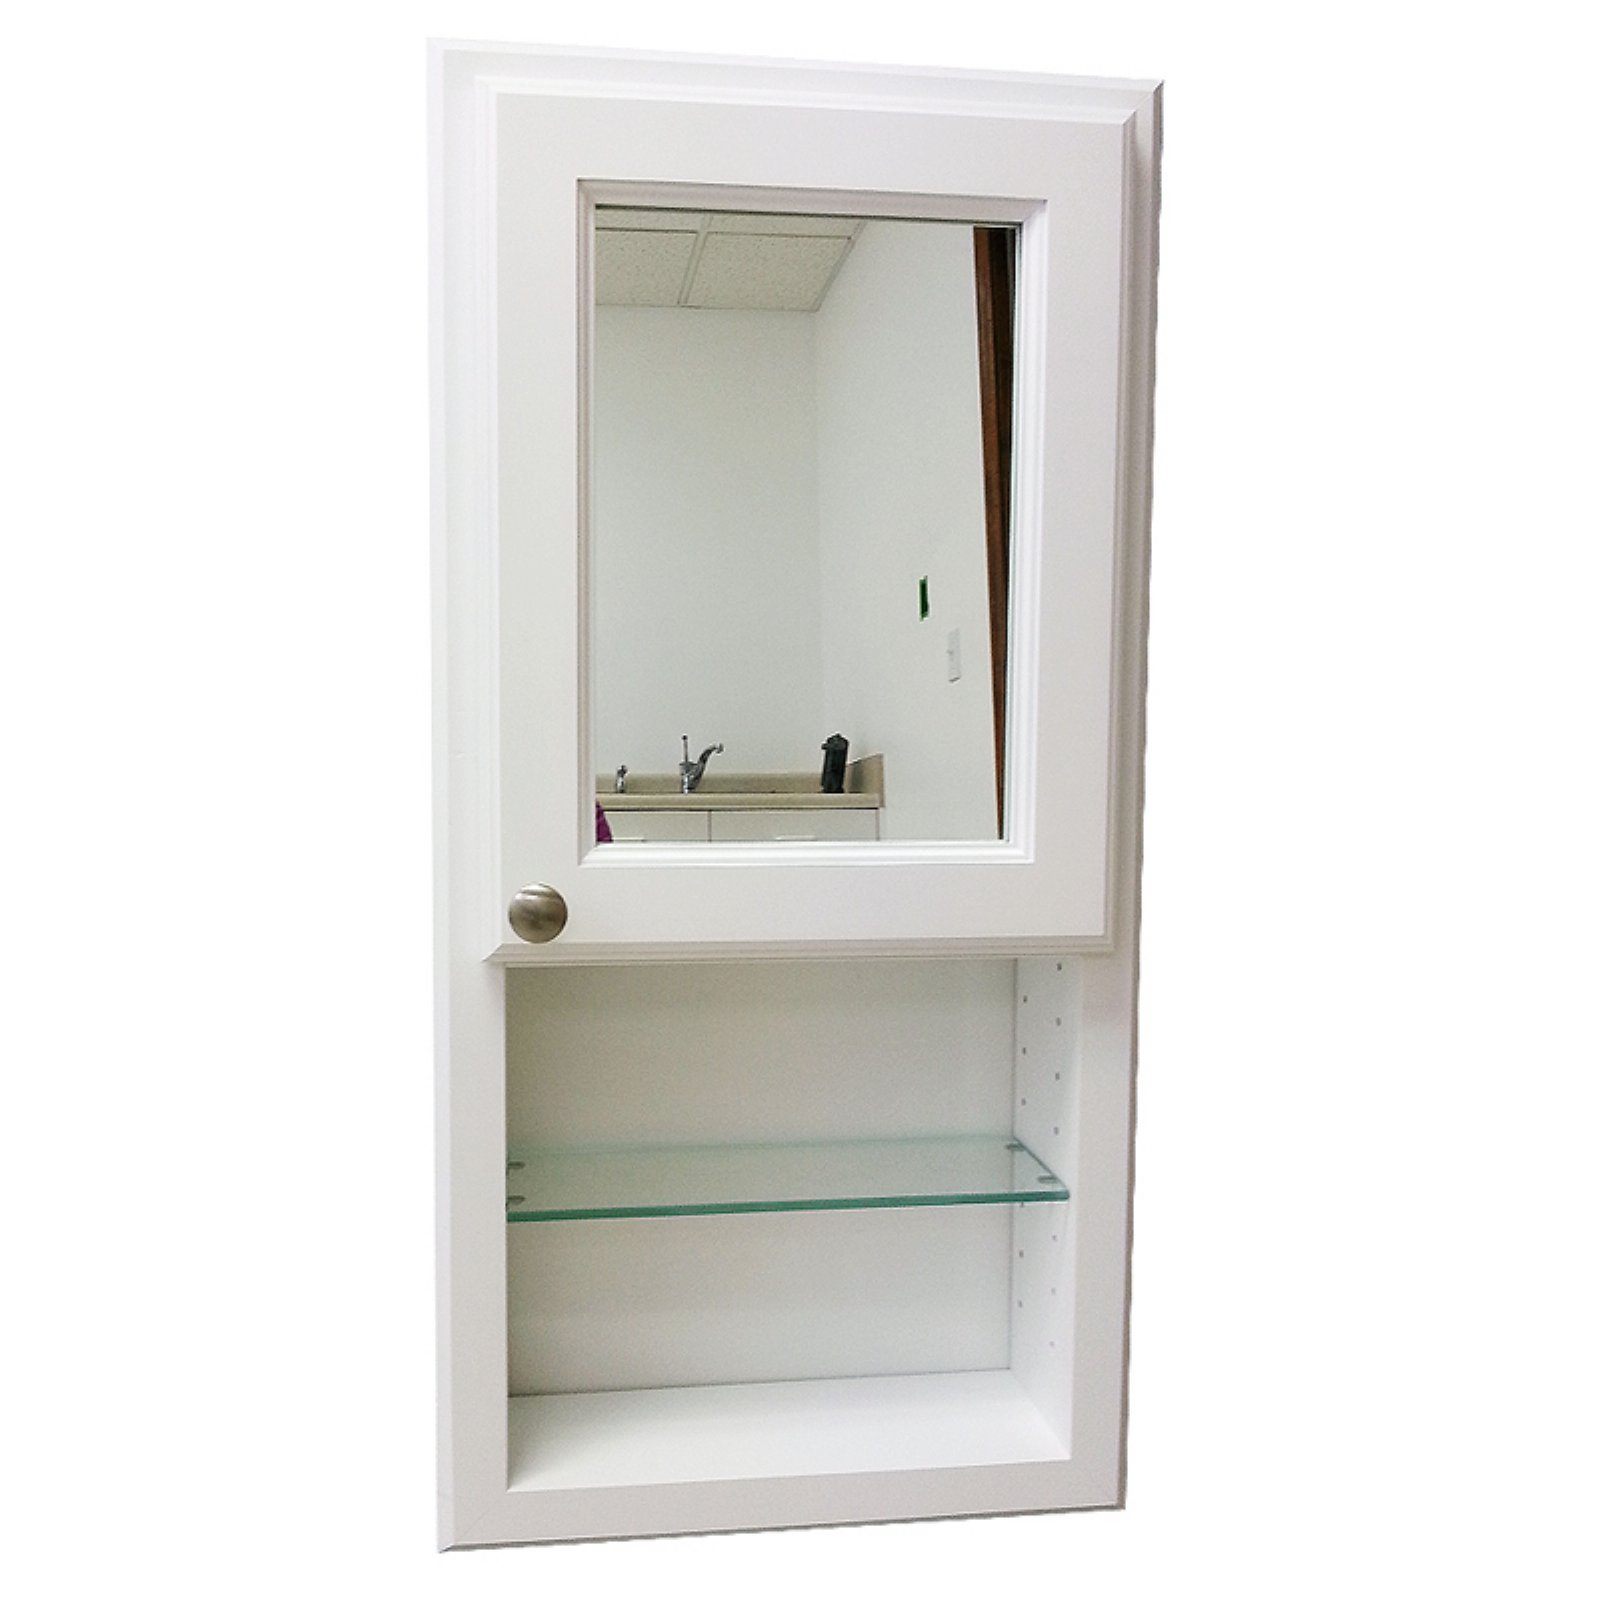 WG Wood Nash 15.5W x 37.5H in. Recessed Medicine Cabinet with Mirror Door by